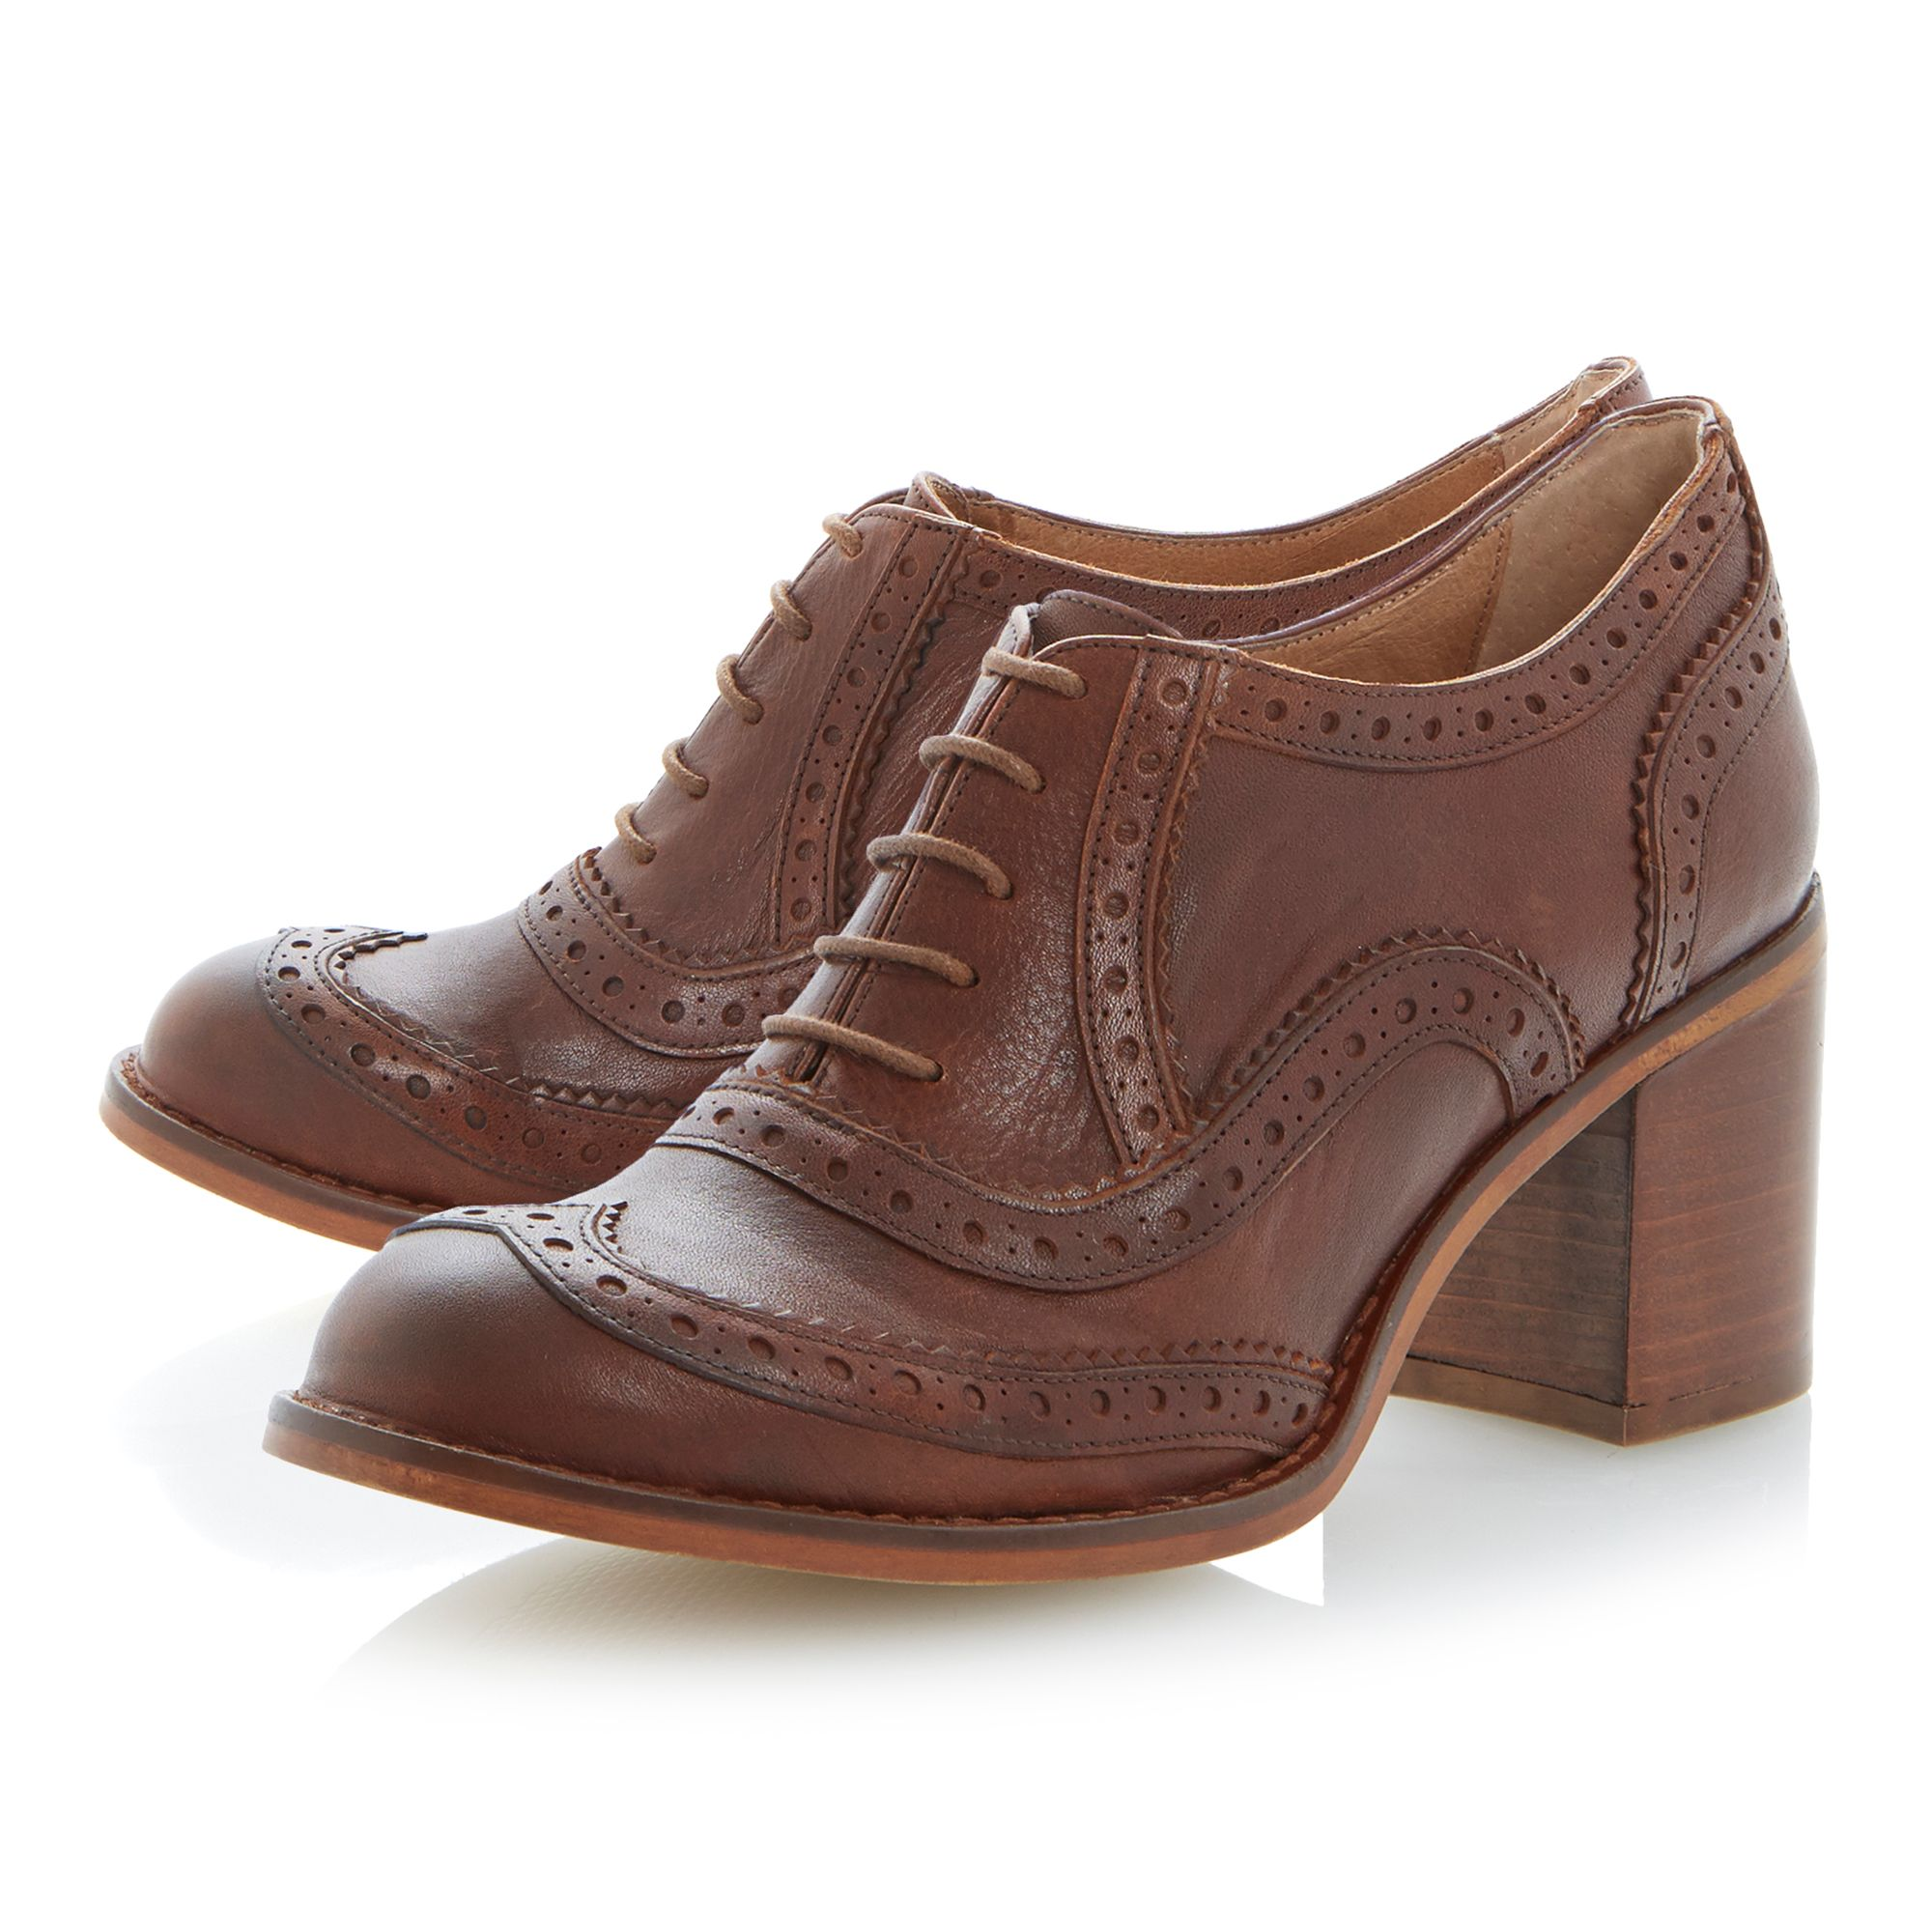 Amoy heeled lace up brogue shoes